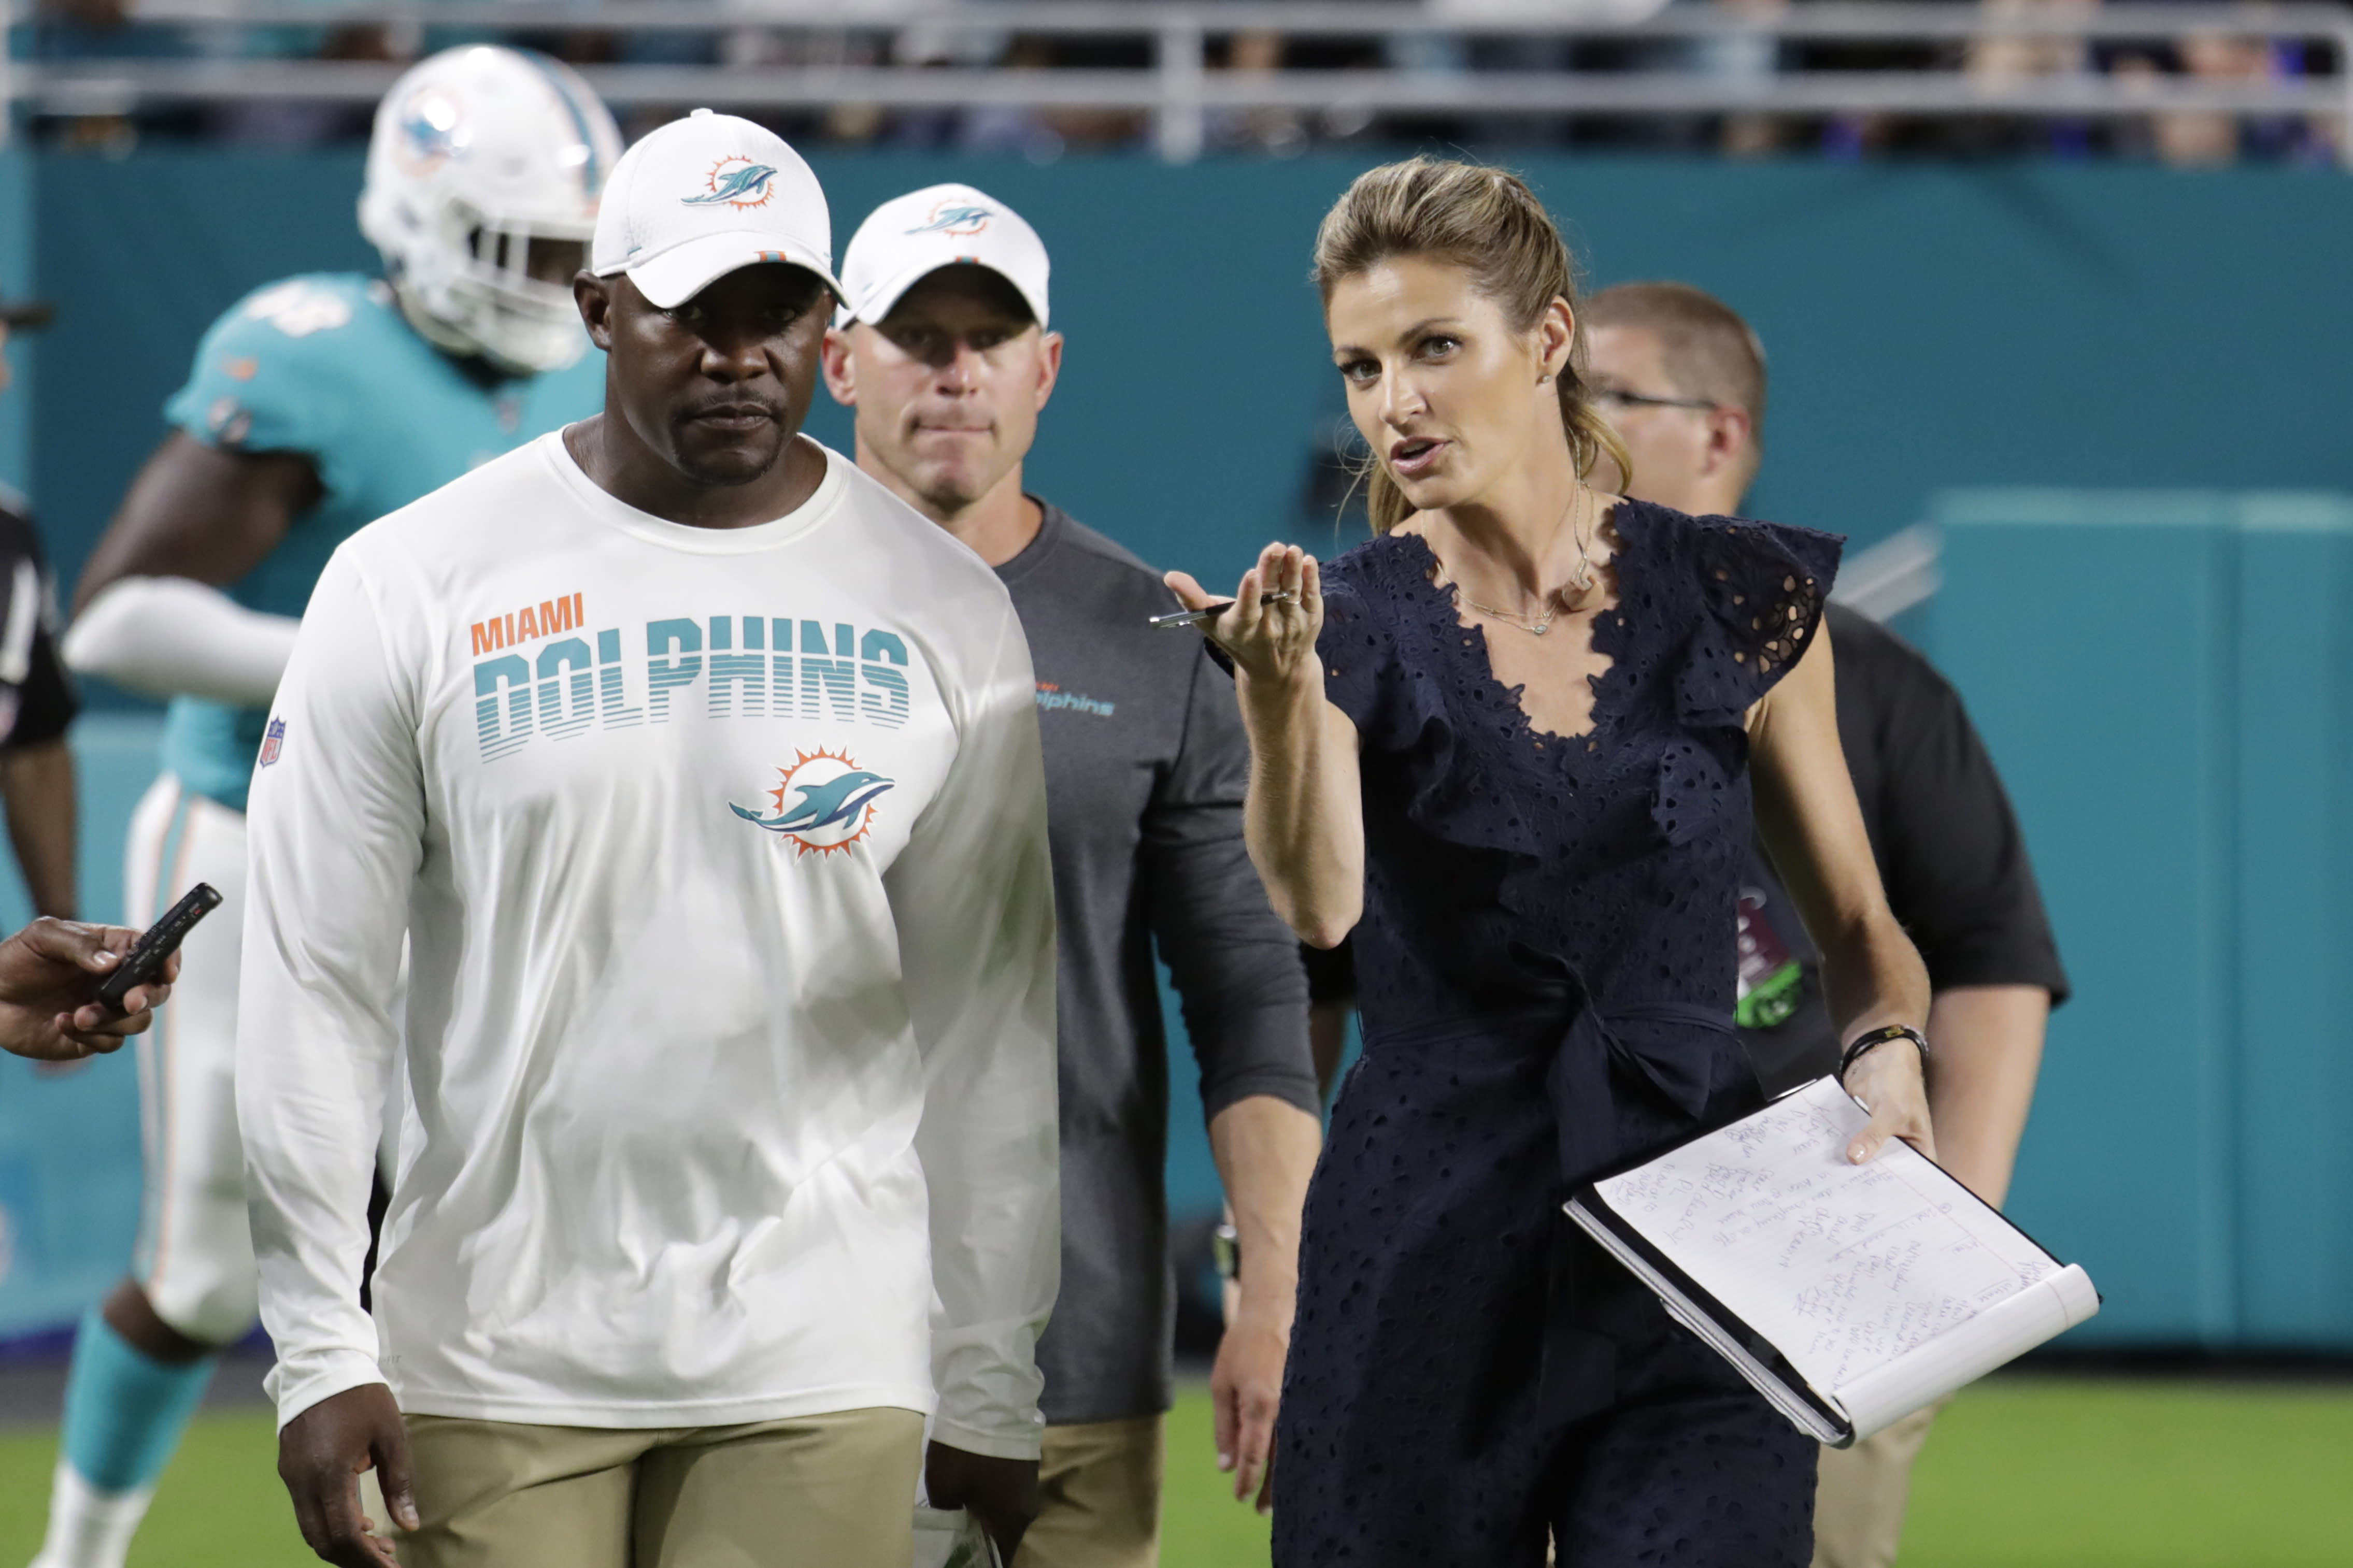 Dolphins Was Dolphins coach sending a message via Jay-Z songs?